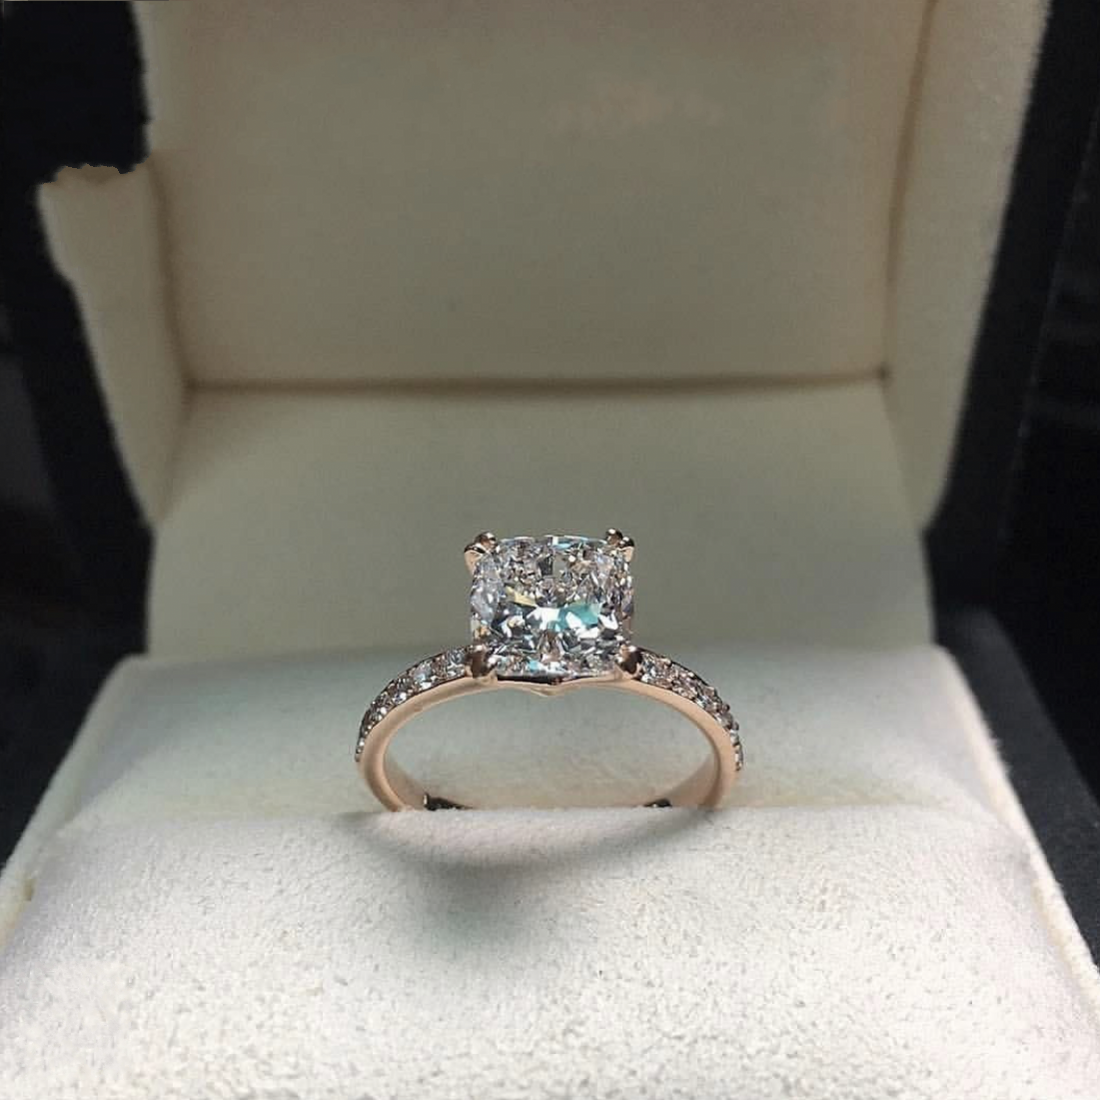 Real Solid 925 Sterling Silver Ring Four Claws 2Ct Cushion Cut Diamond Wedding Engagement Rings For Women Fine Jewelry Gift